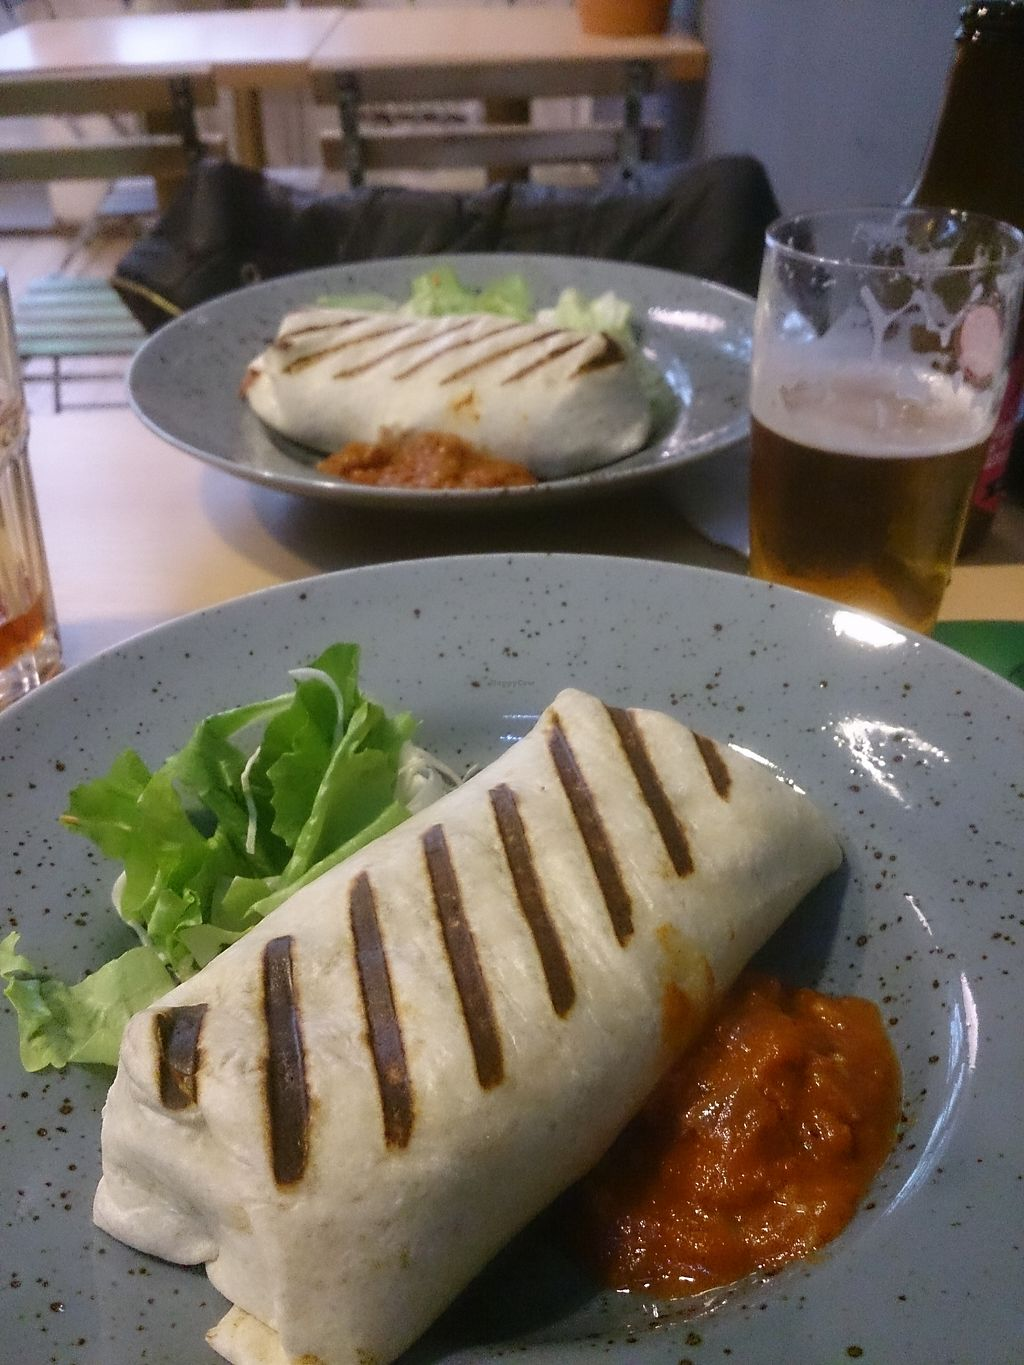 """Photo of Waipawa  by <a href=""""/members/profile/hanamizu"""">hanamizu</a> <br/>burrito filled with rice <br/> August 31, 2017  - <a href='/contact/abuse/image/81824/299510'>Report</a>"""